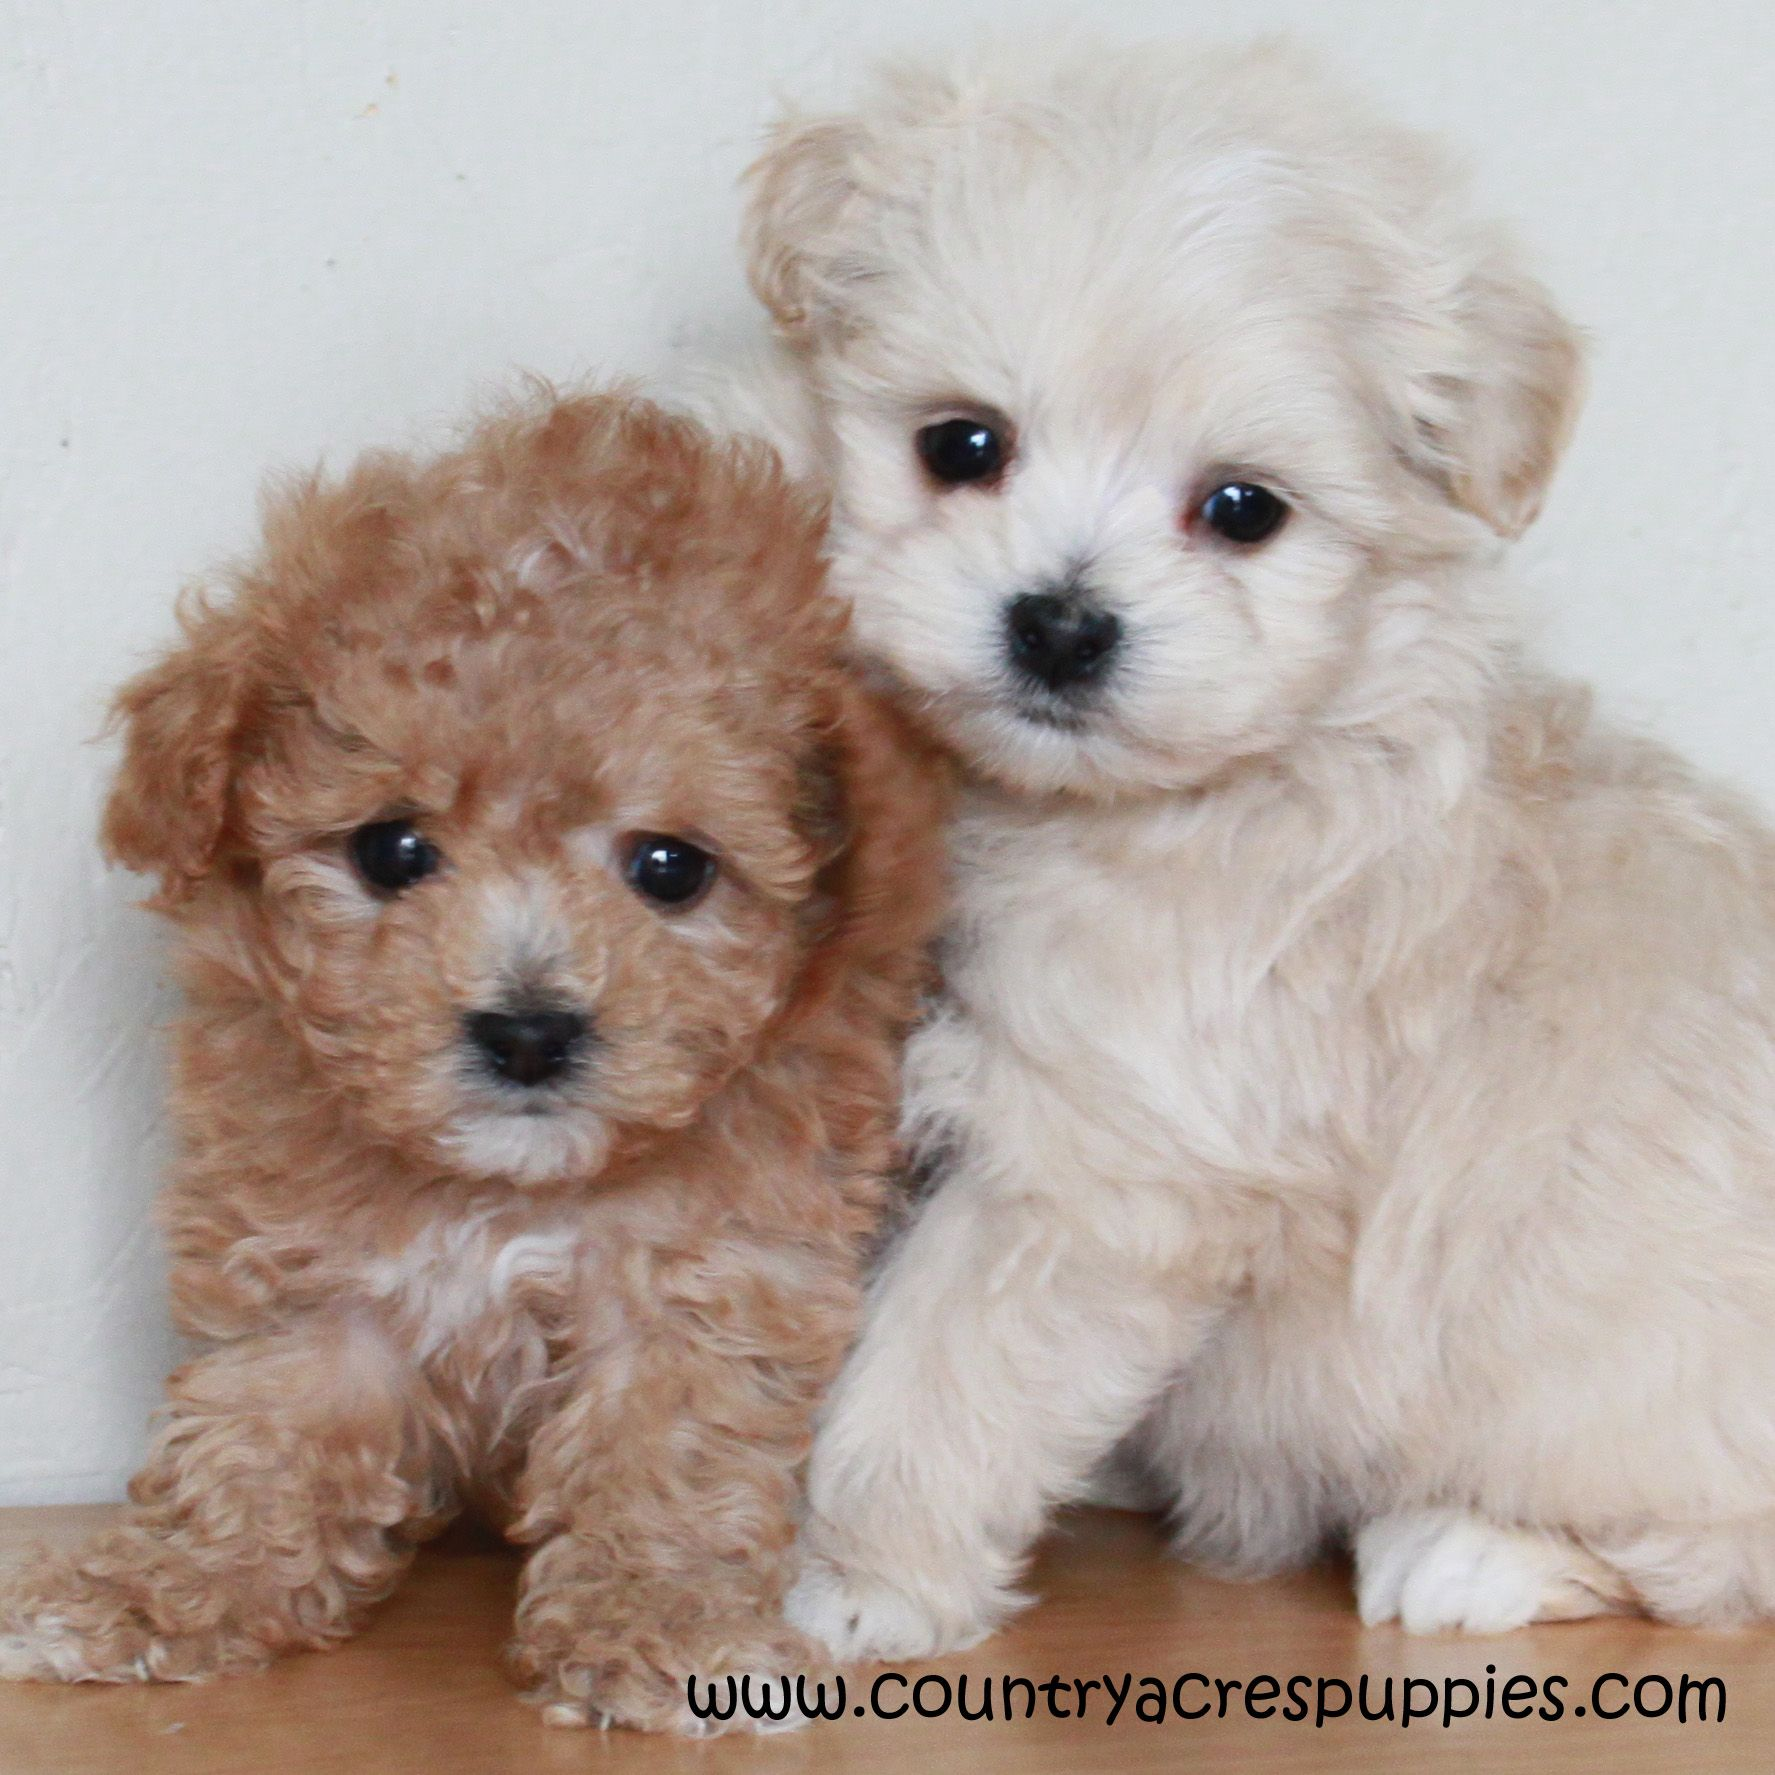 Maltipoo puppies!! Cute balls of fluff. Cute little